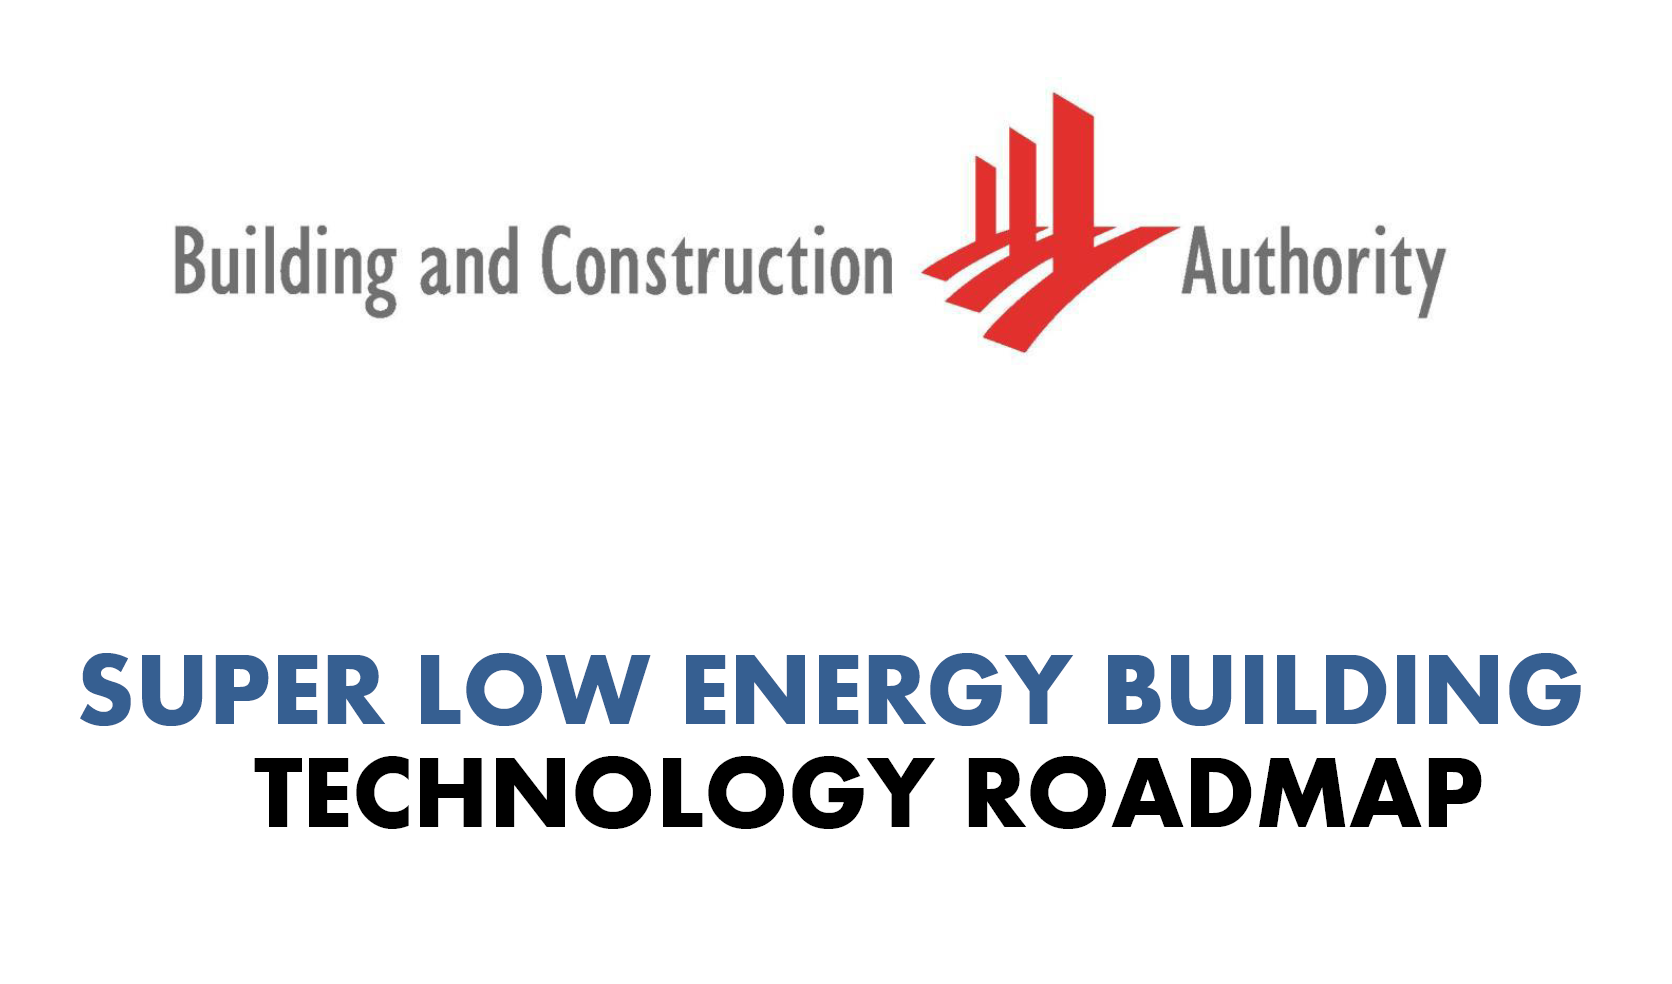 BCA Launched Super Low Energy Buildings Technology Roadmap at the Singapore Green Building Week (SGBW) 2018